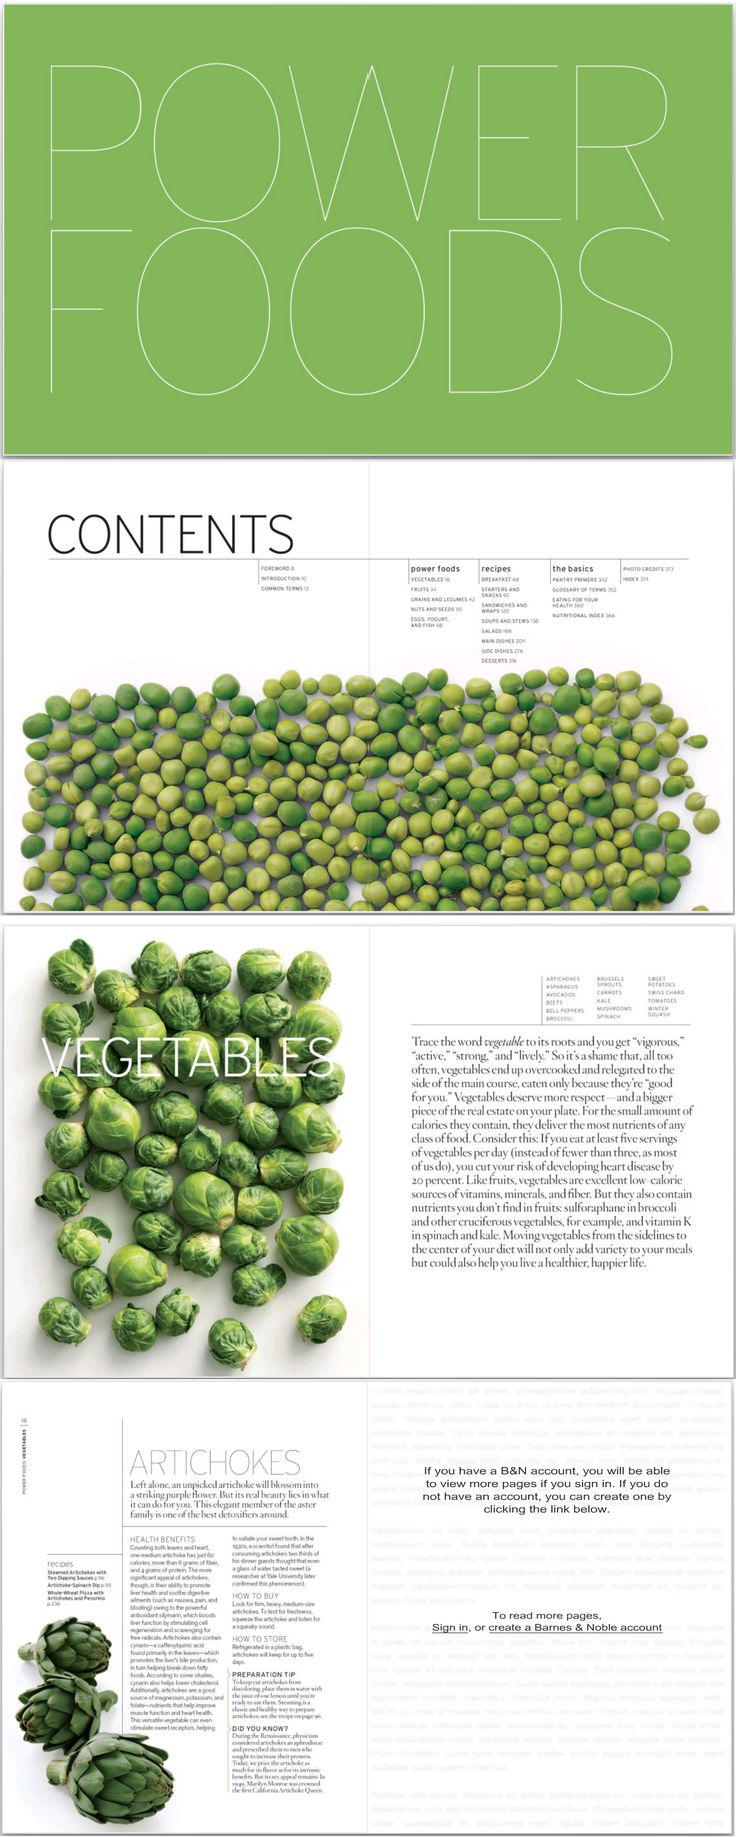 Editorial layouts from Power Foods